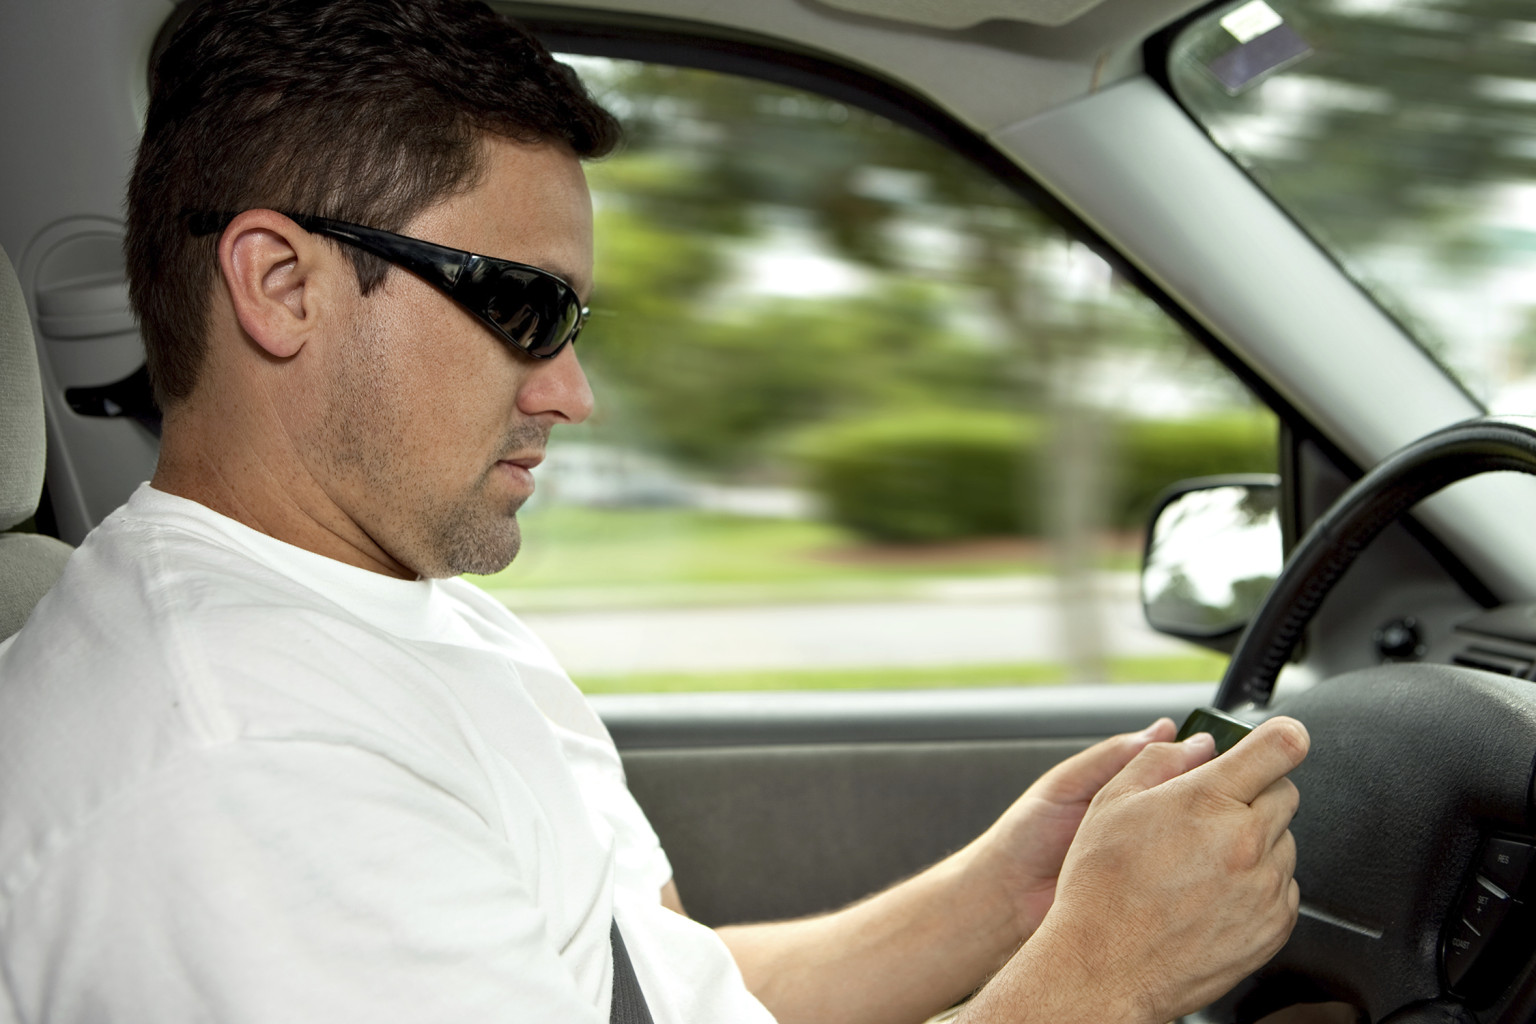 Texting While Driving >> Florida Finally Bans Texting and Driving | HuffPost